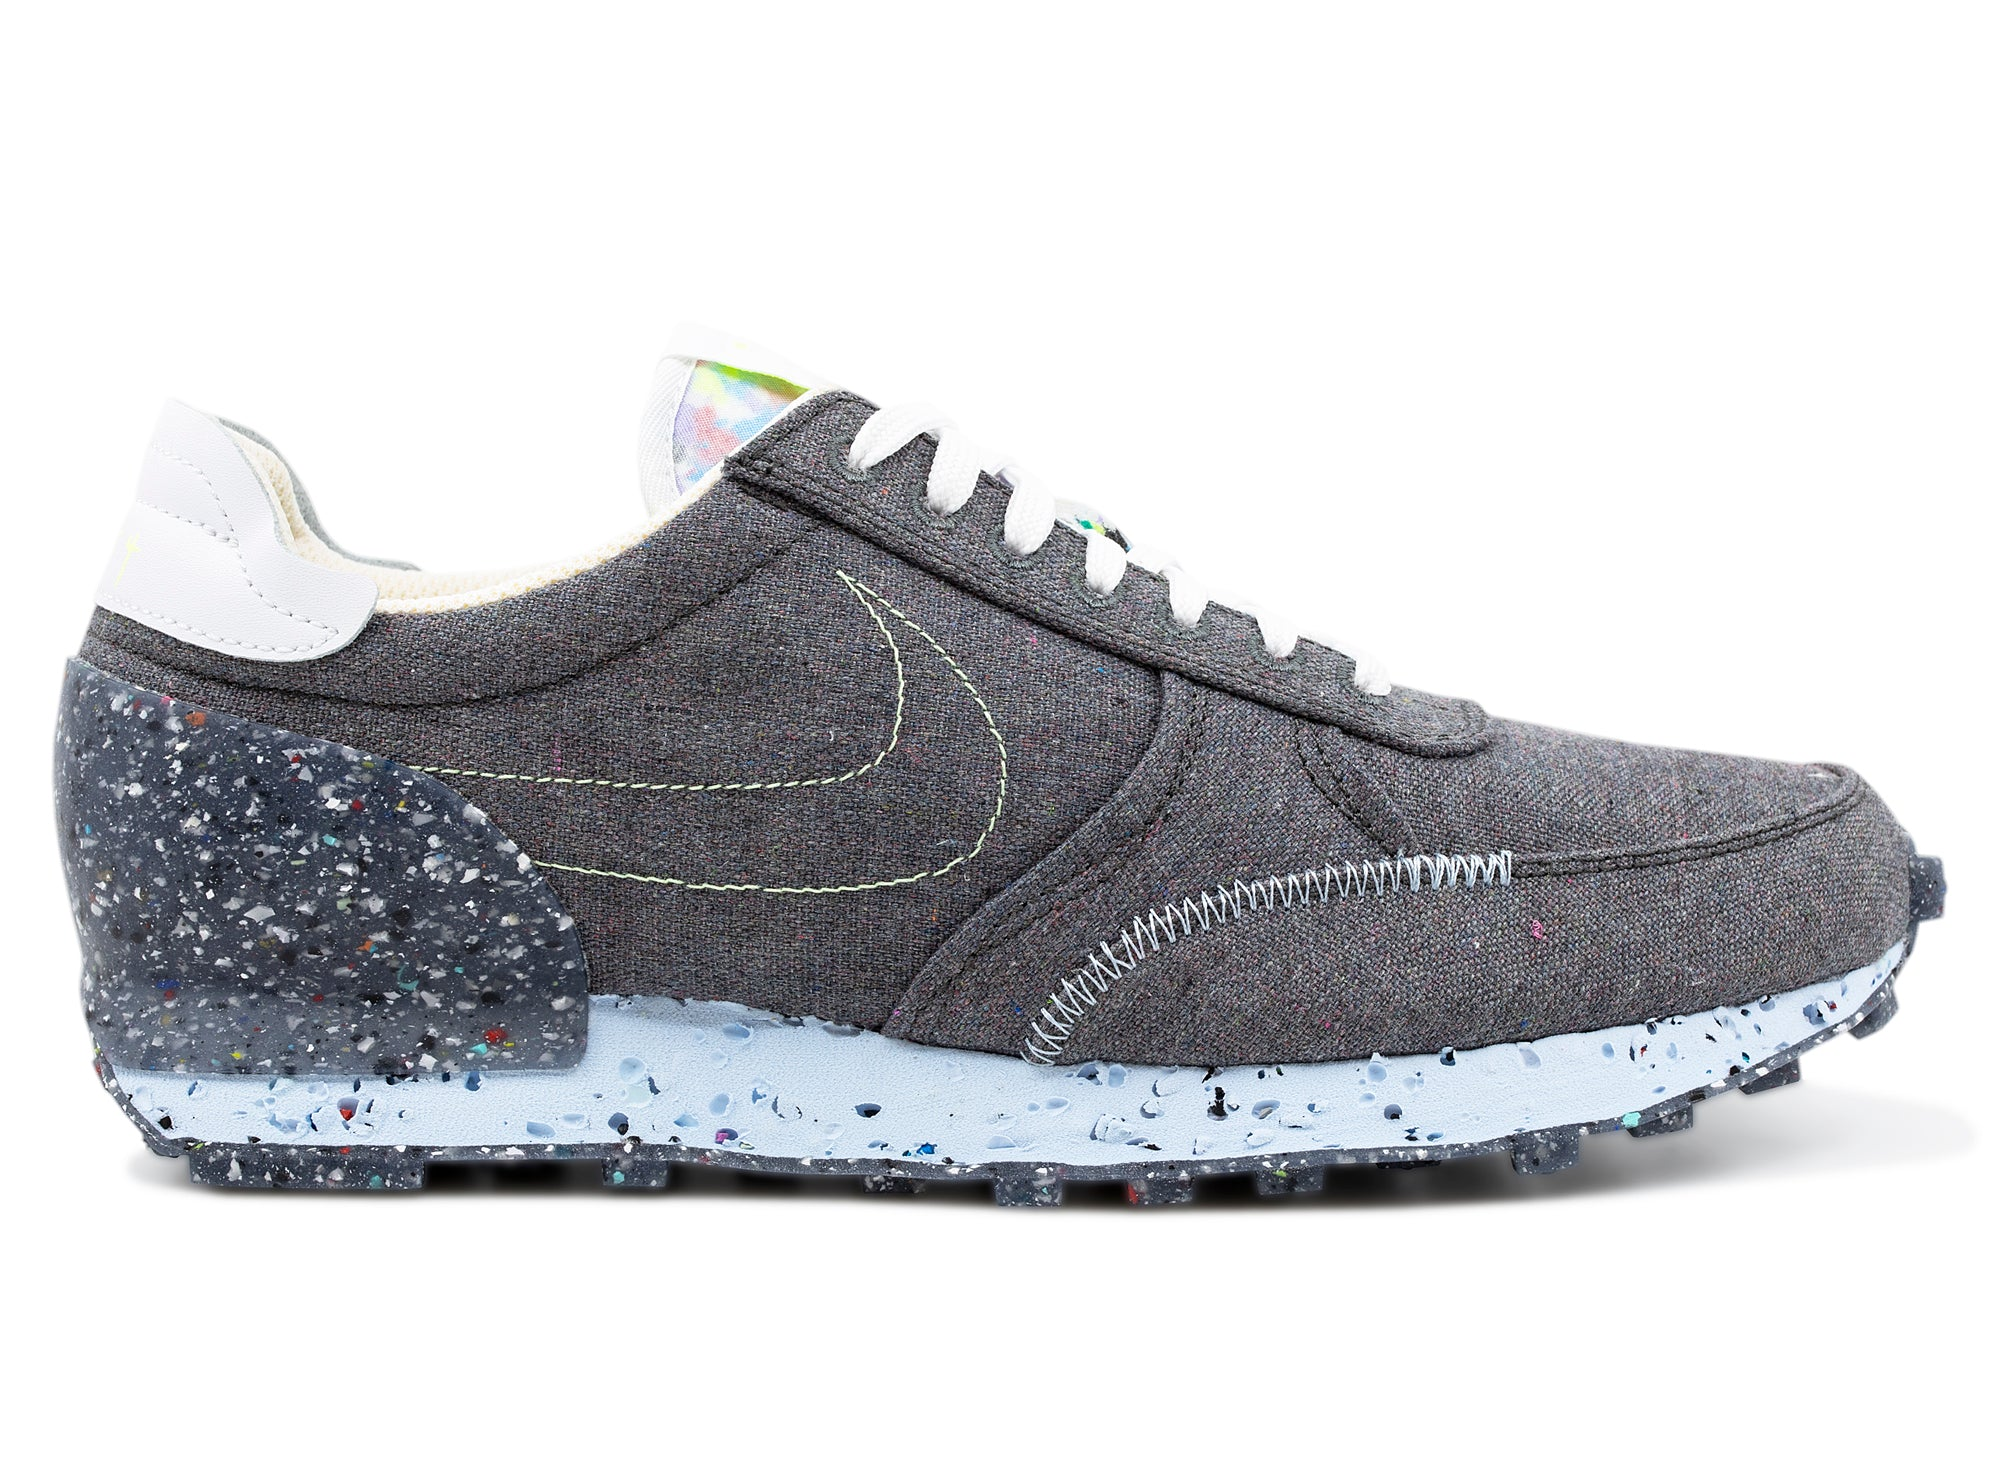 Nike Daybreak-Type 'Recycled Canvas' xld